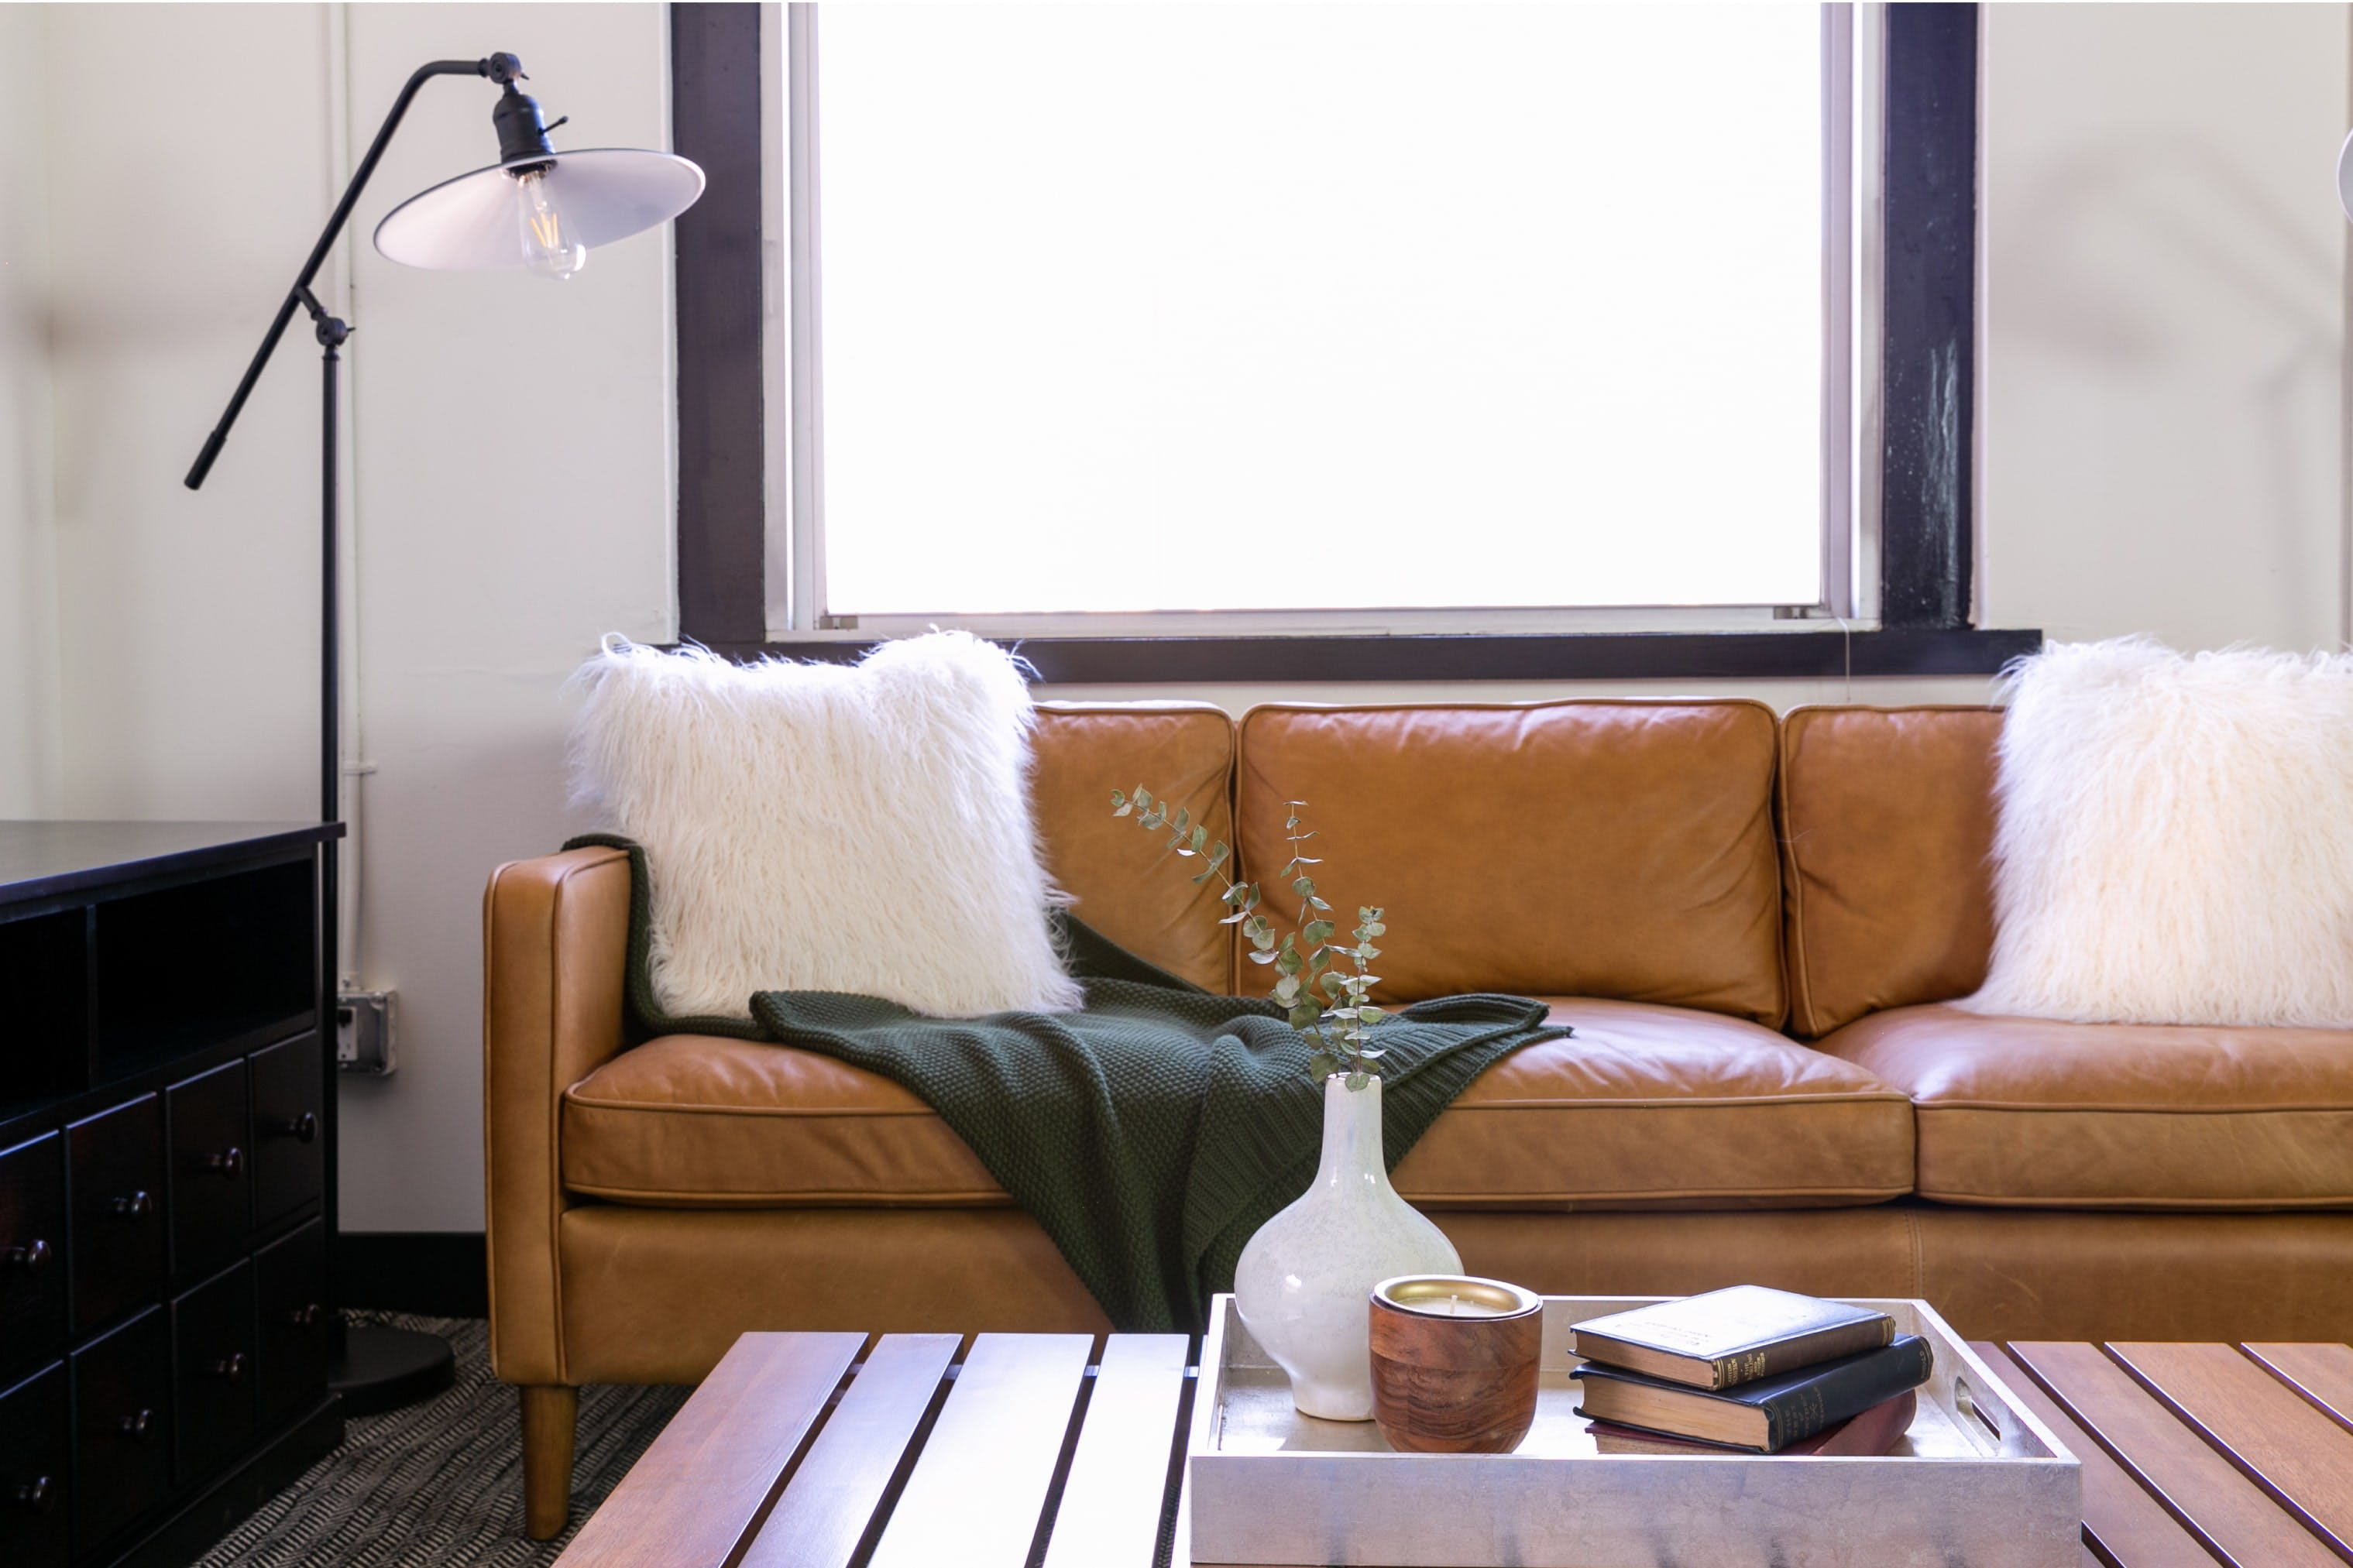 Leather couch with fluffy pillows.